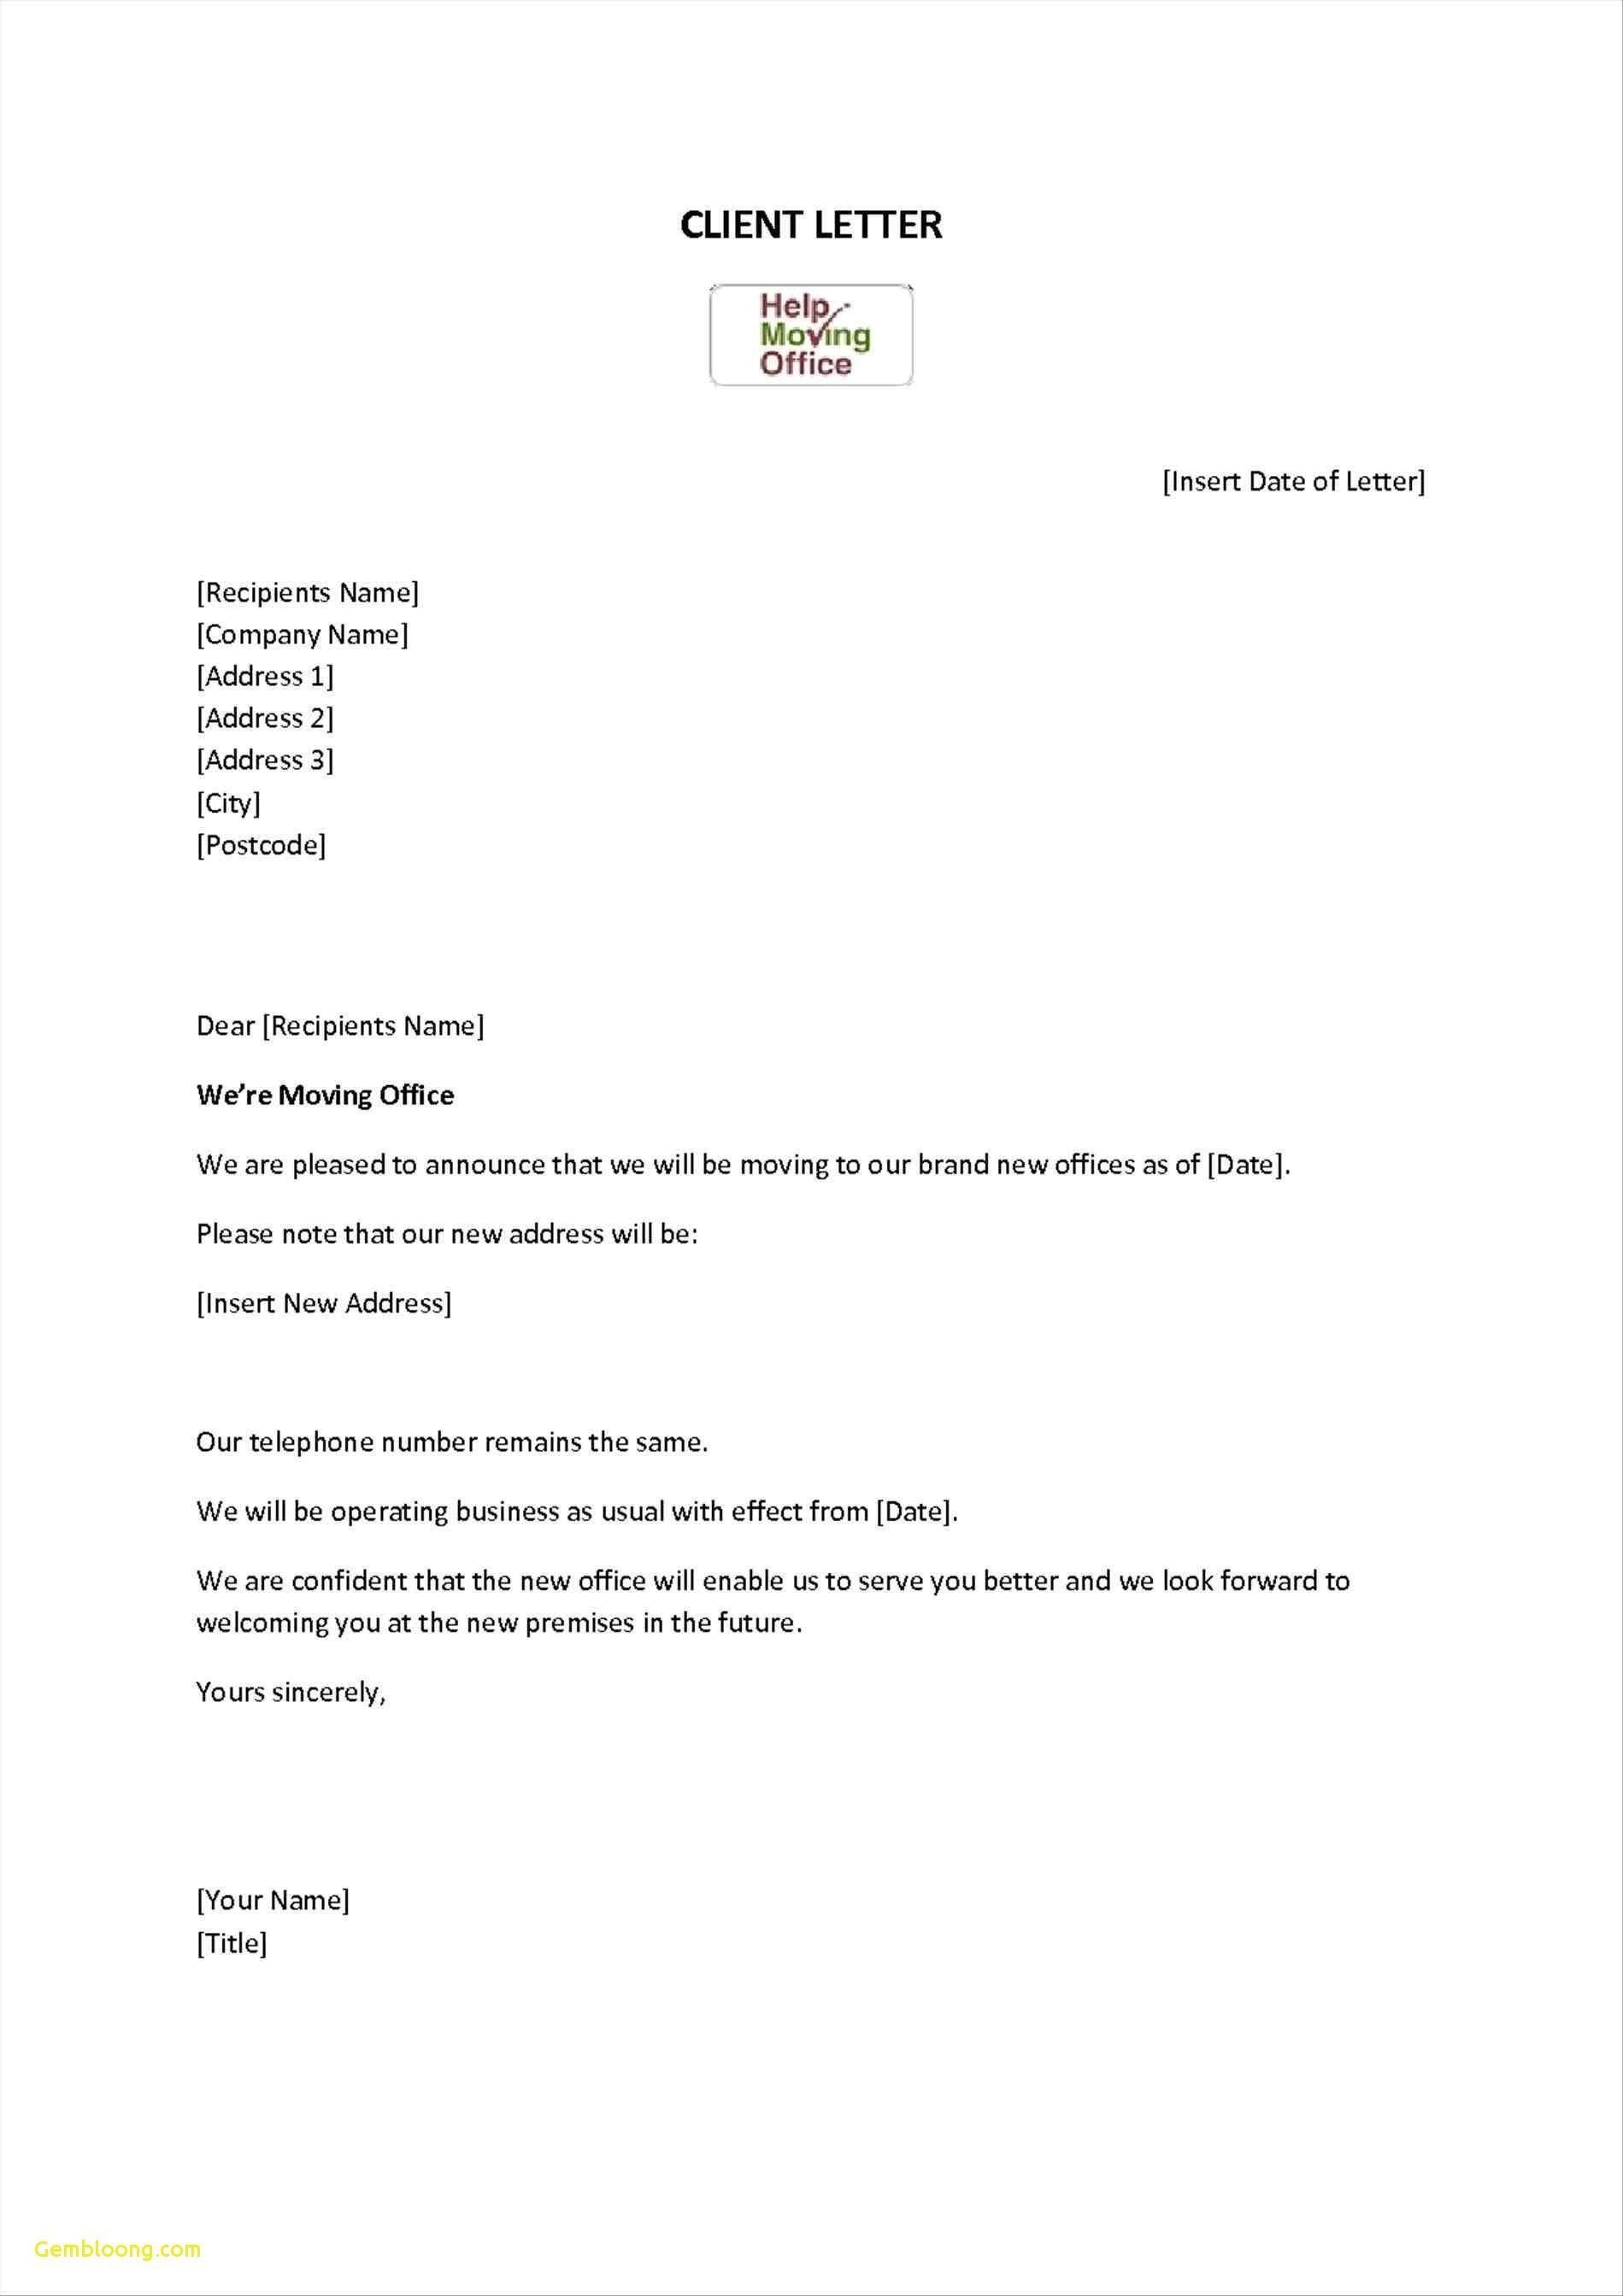 000 Staggering Change Of Addres Letter Template Concept  Templates For Busines FreeFull